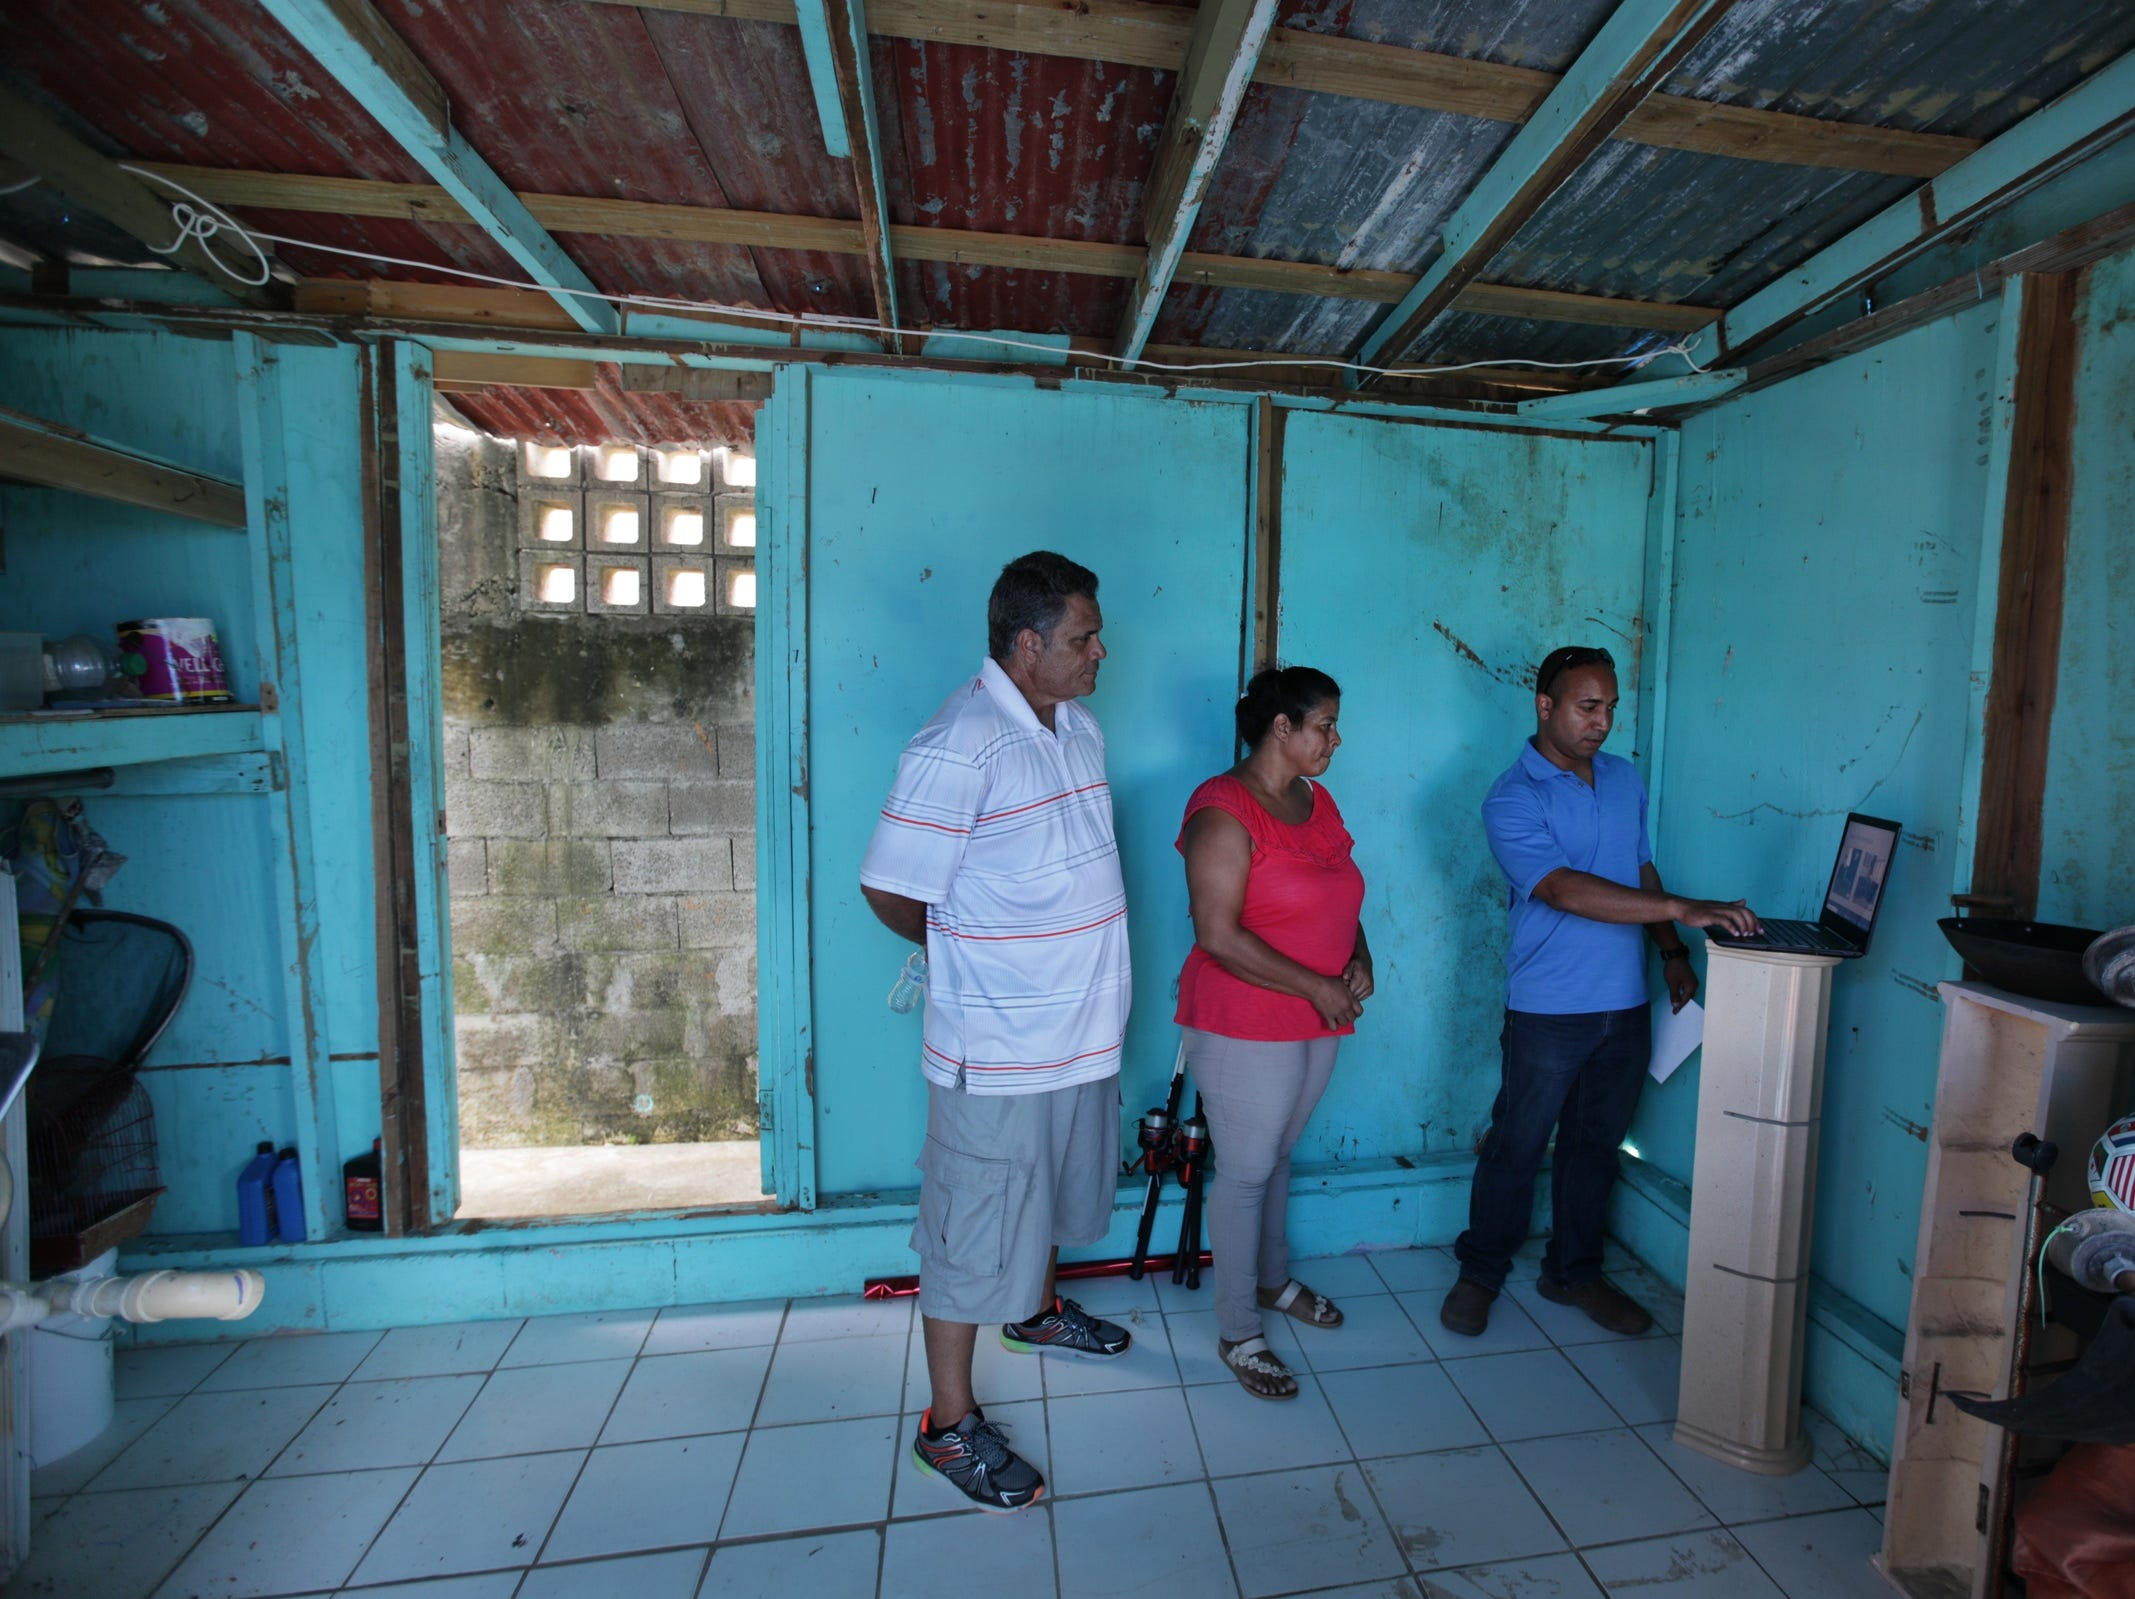 (l to r) Eleobadis Delgado and his wife Luz Delgado  stand in the shelter they have built where their home once stood, choosing new dinning room, bedroom and living room sets with the help of Ebel Rodriguez of the Salvation Army in Maunabo, Puerto Rico. The furniture will be donated by the Salvation Army with support from the Ford Fund to help the Delgados rebuild their lives since their home was leveled by Hurricane Maria ten months prior.